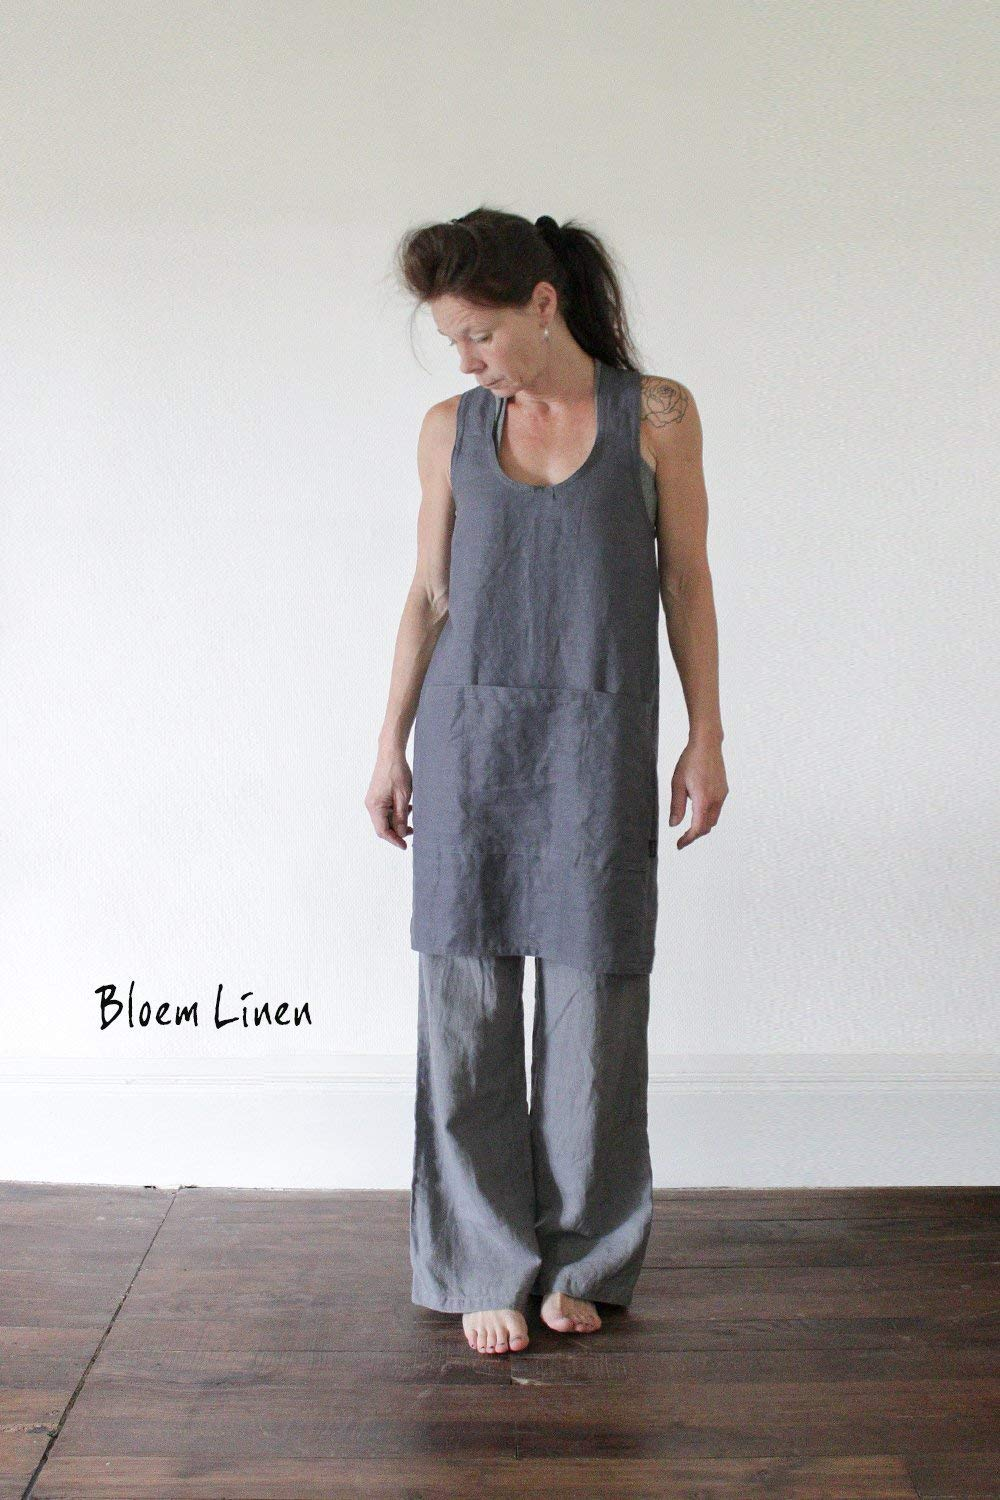 Linen apron in Slate Grey, Handmade Pinafore, Apron dress in natural linen, Eco friendly